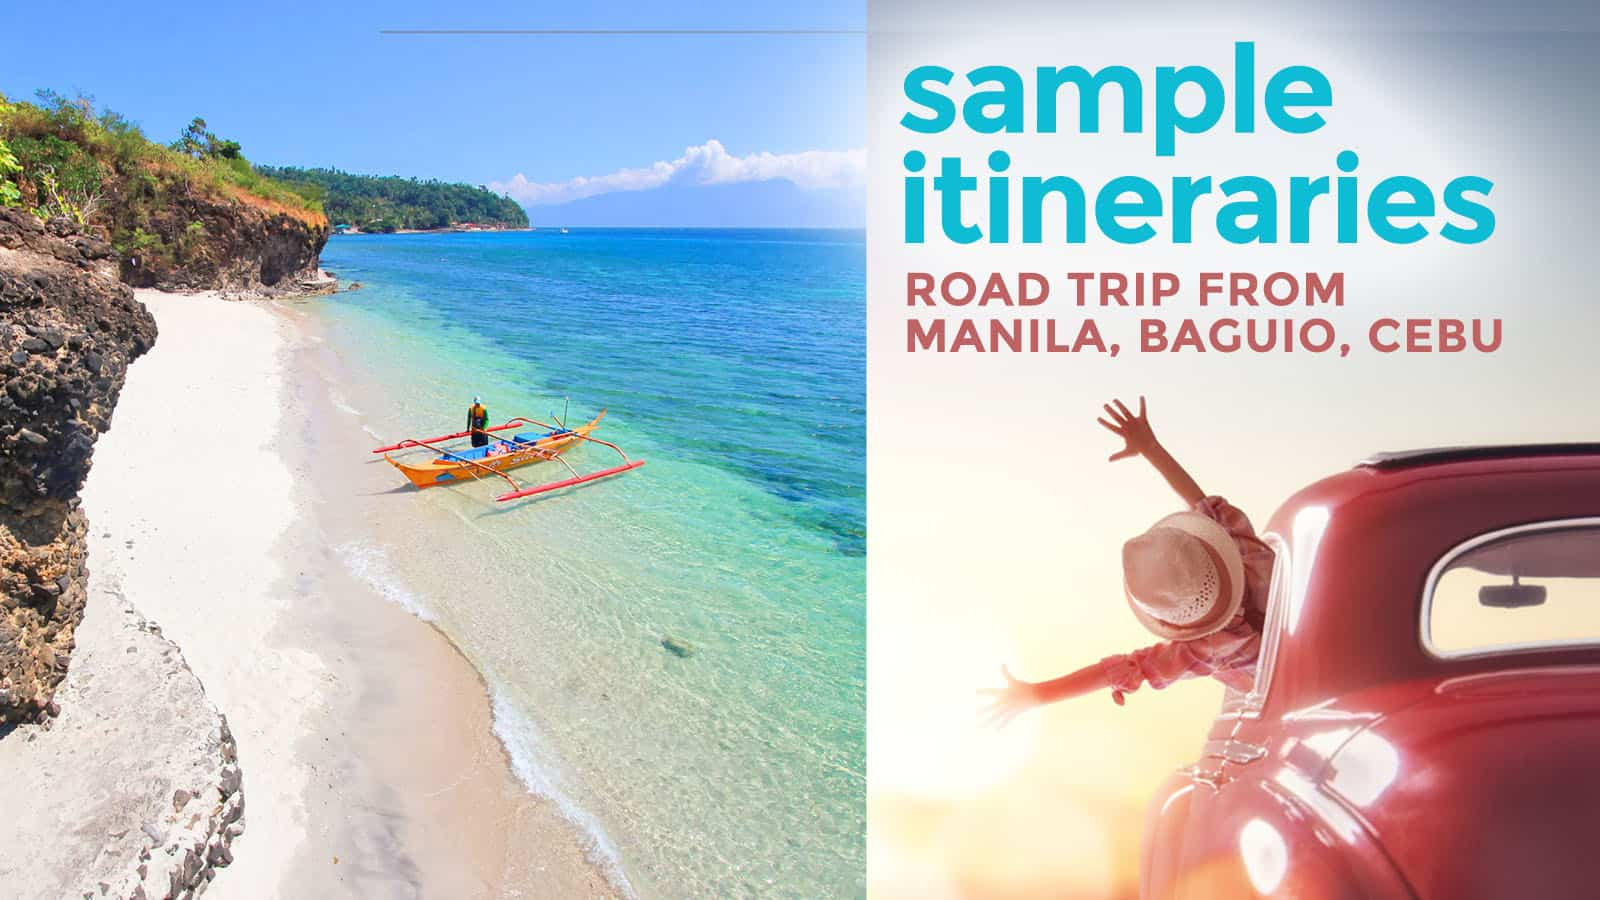 10 PHILIPPINE ROAD TRIP DESTINATIONS: From Manila, Cebu, and More!